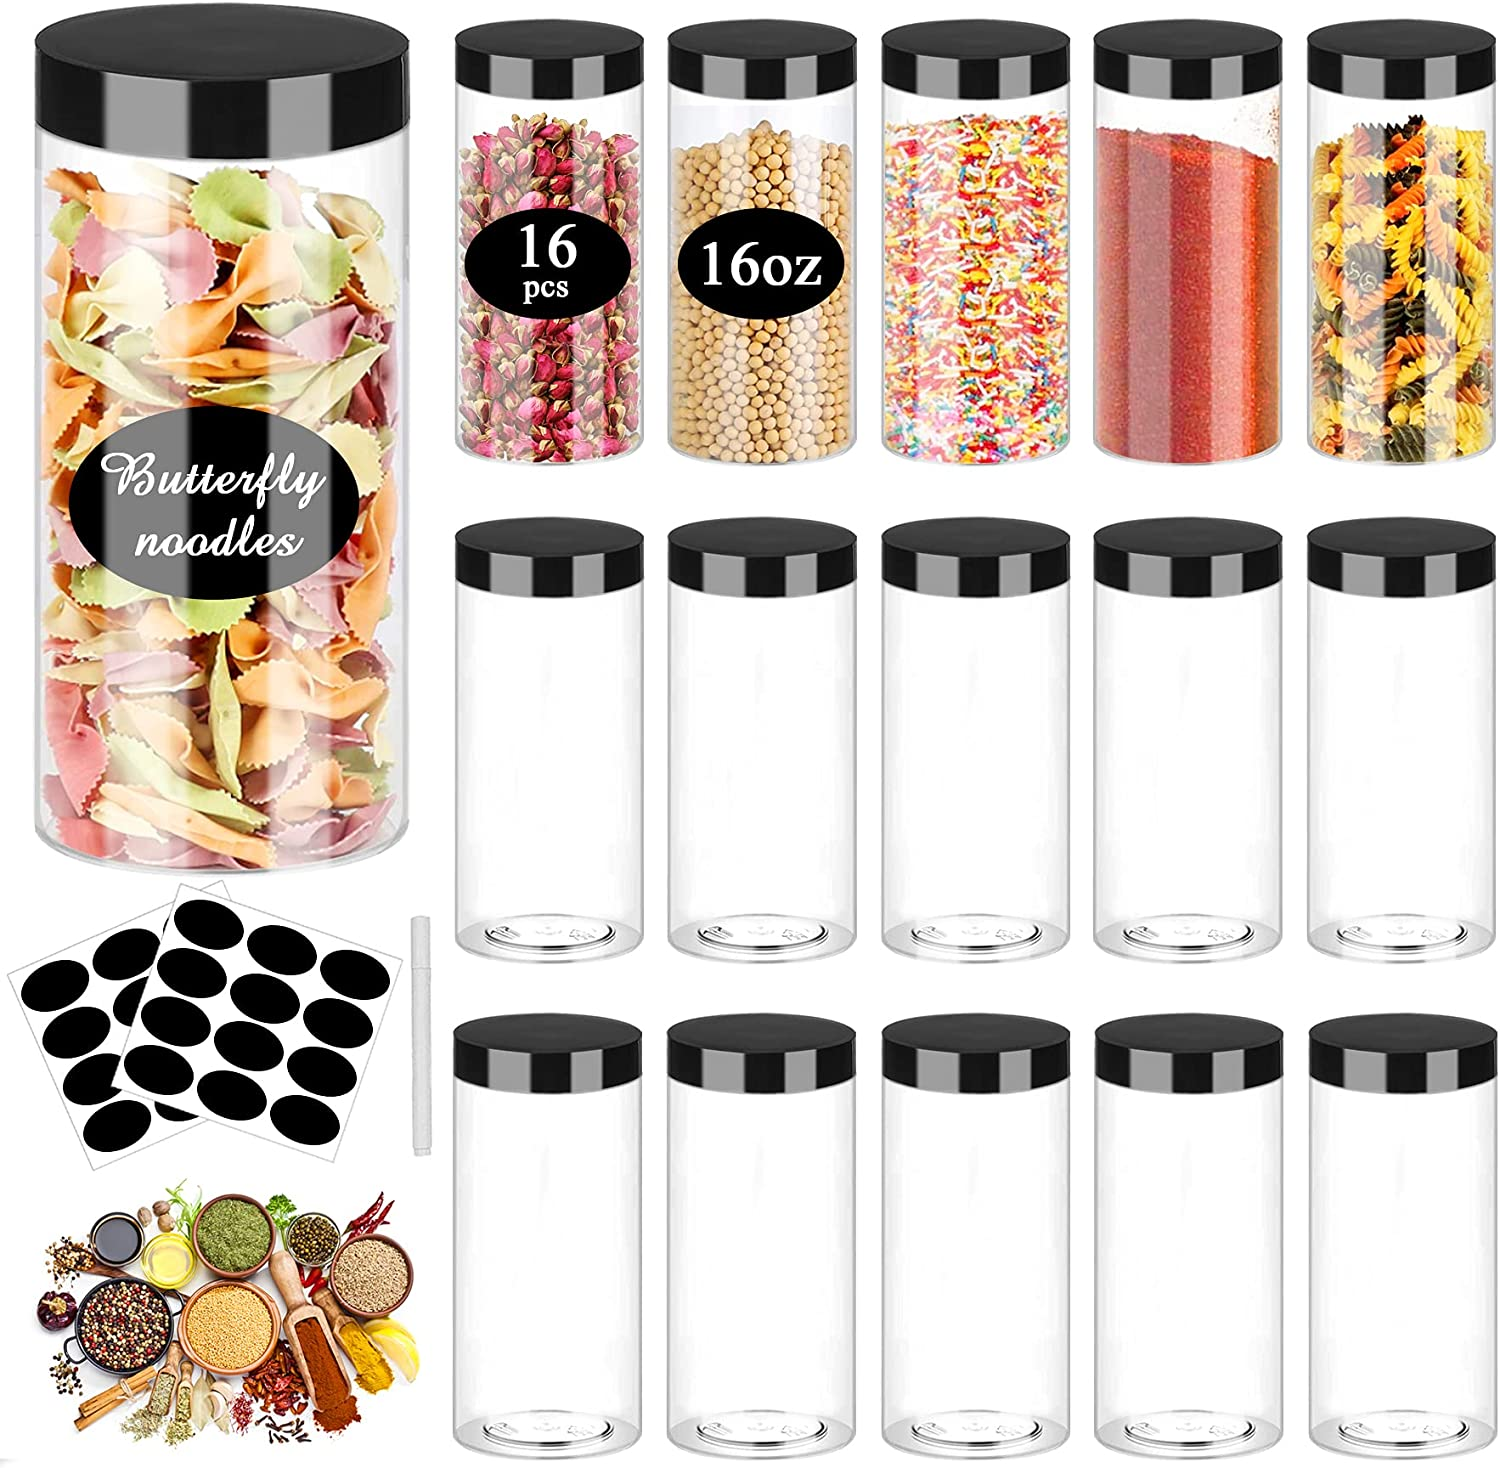 Plastic Jar with Lids 16oz Clear Empty Containers 16Pcs Straight Cylinders Storage Jars with Airtight Black LidStackable Refillable Round Plastic Jars for Kitchen Food & Home Storage